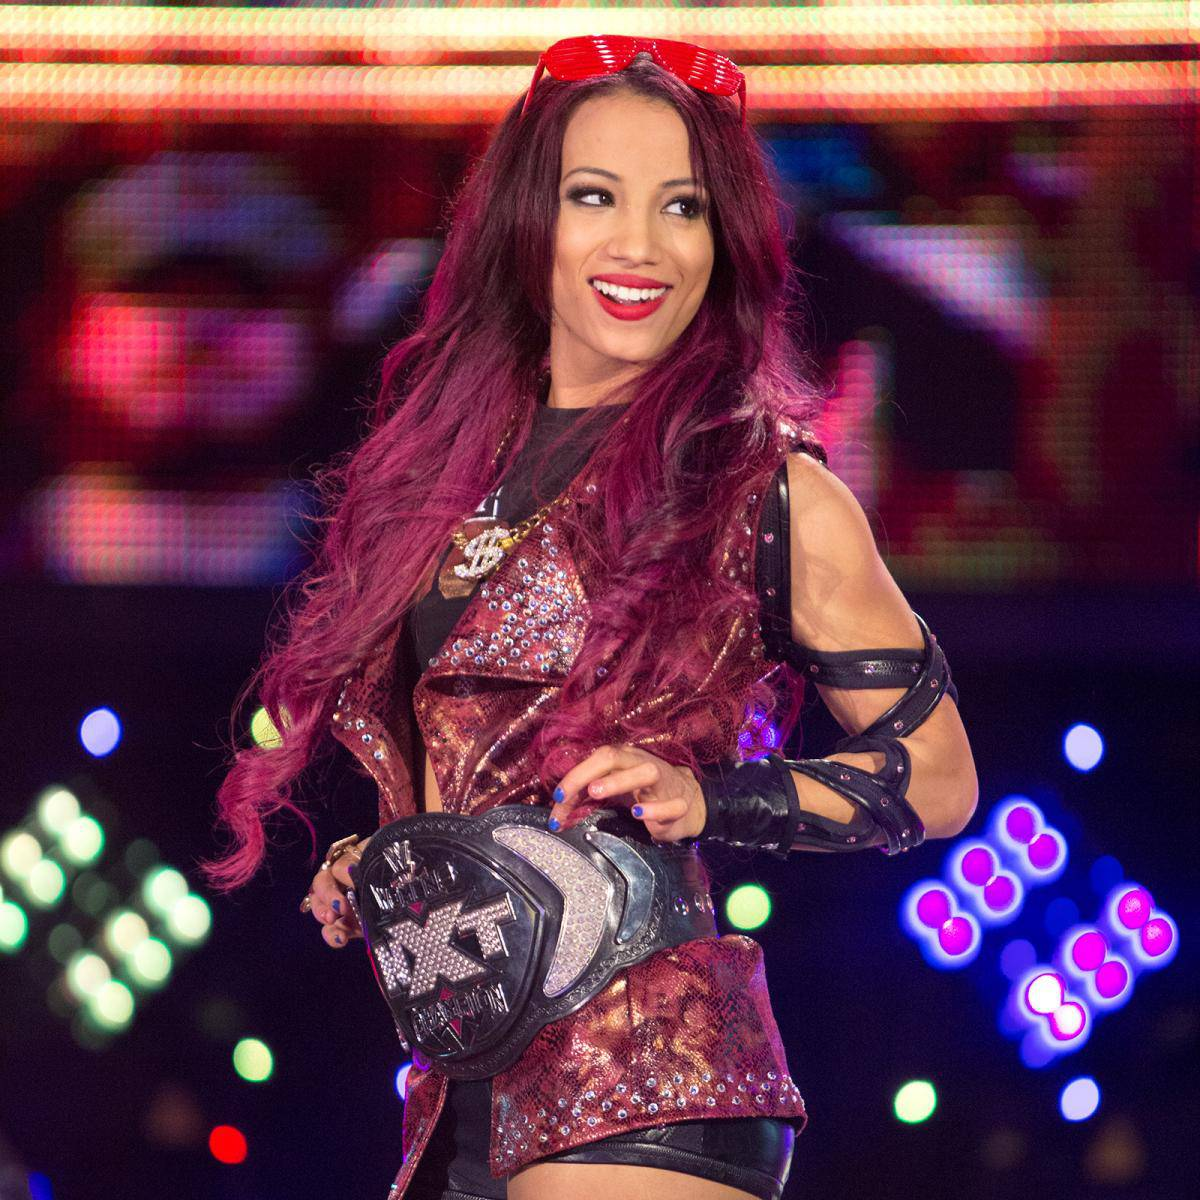 NXT-Sasha-Banks-Purple-Hair-Champ-Purple-Jacket